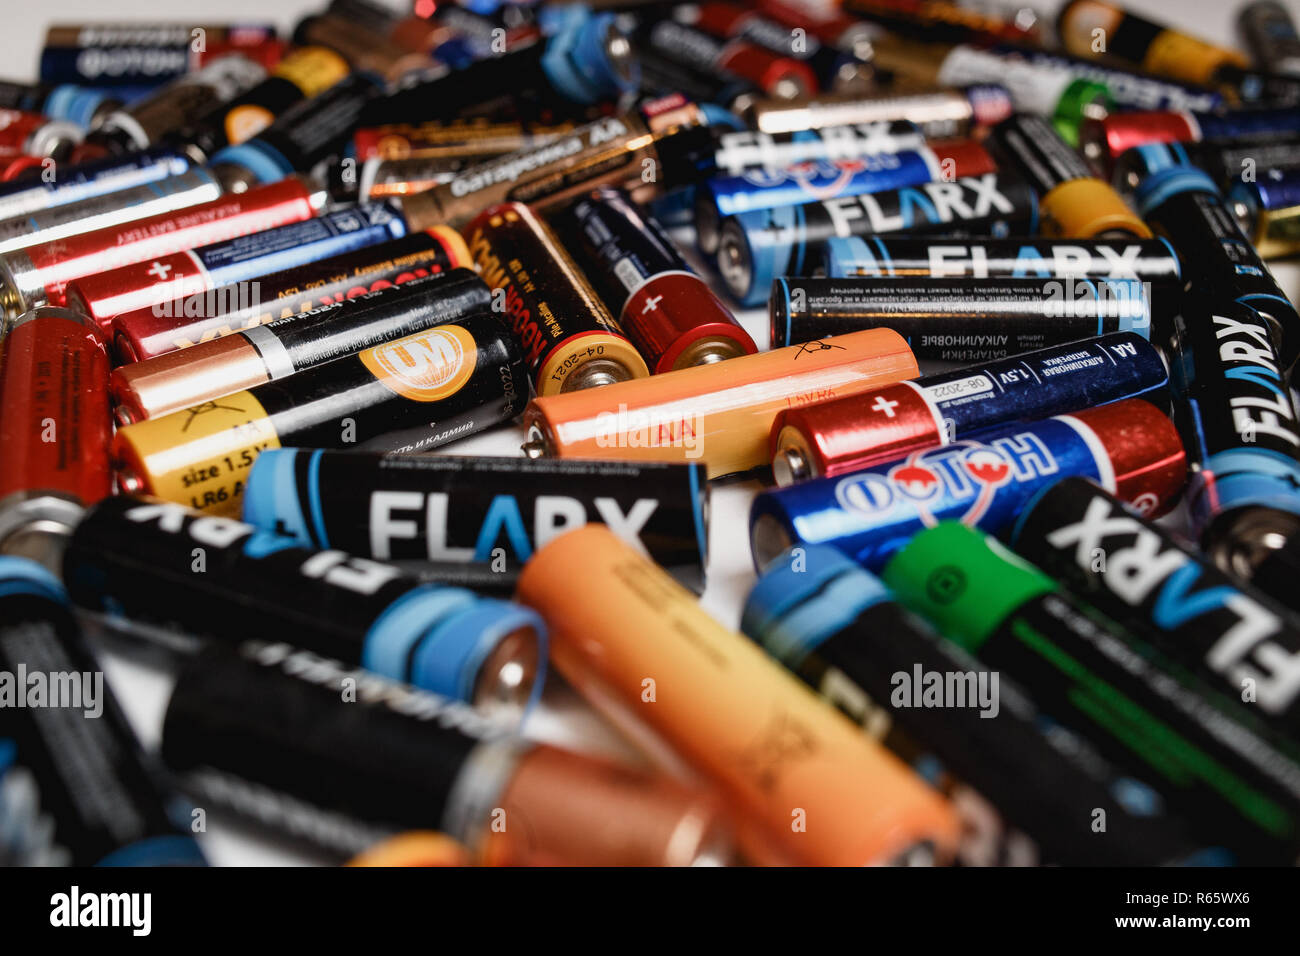 Arkhangelsk, Russia, December 3, 2018: A lot of alkaline batteries scattered on a white table. Concept of reuse, recycling, pollution of heavy metal salts, mercury, cadmium. - Stock Image